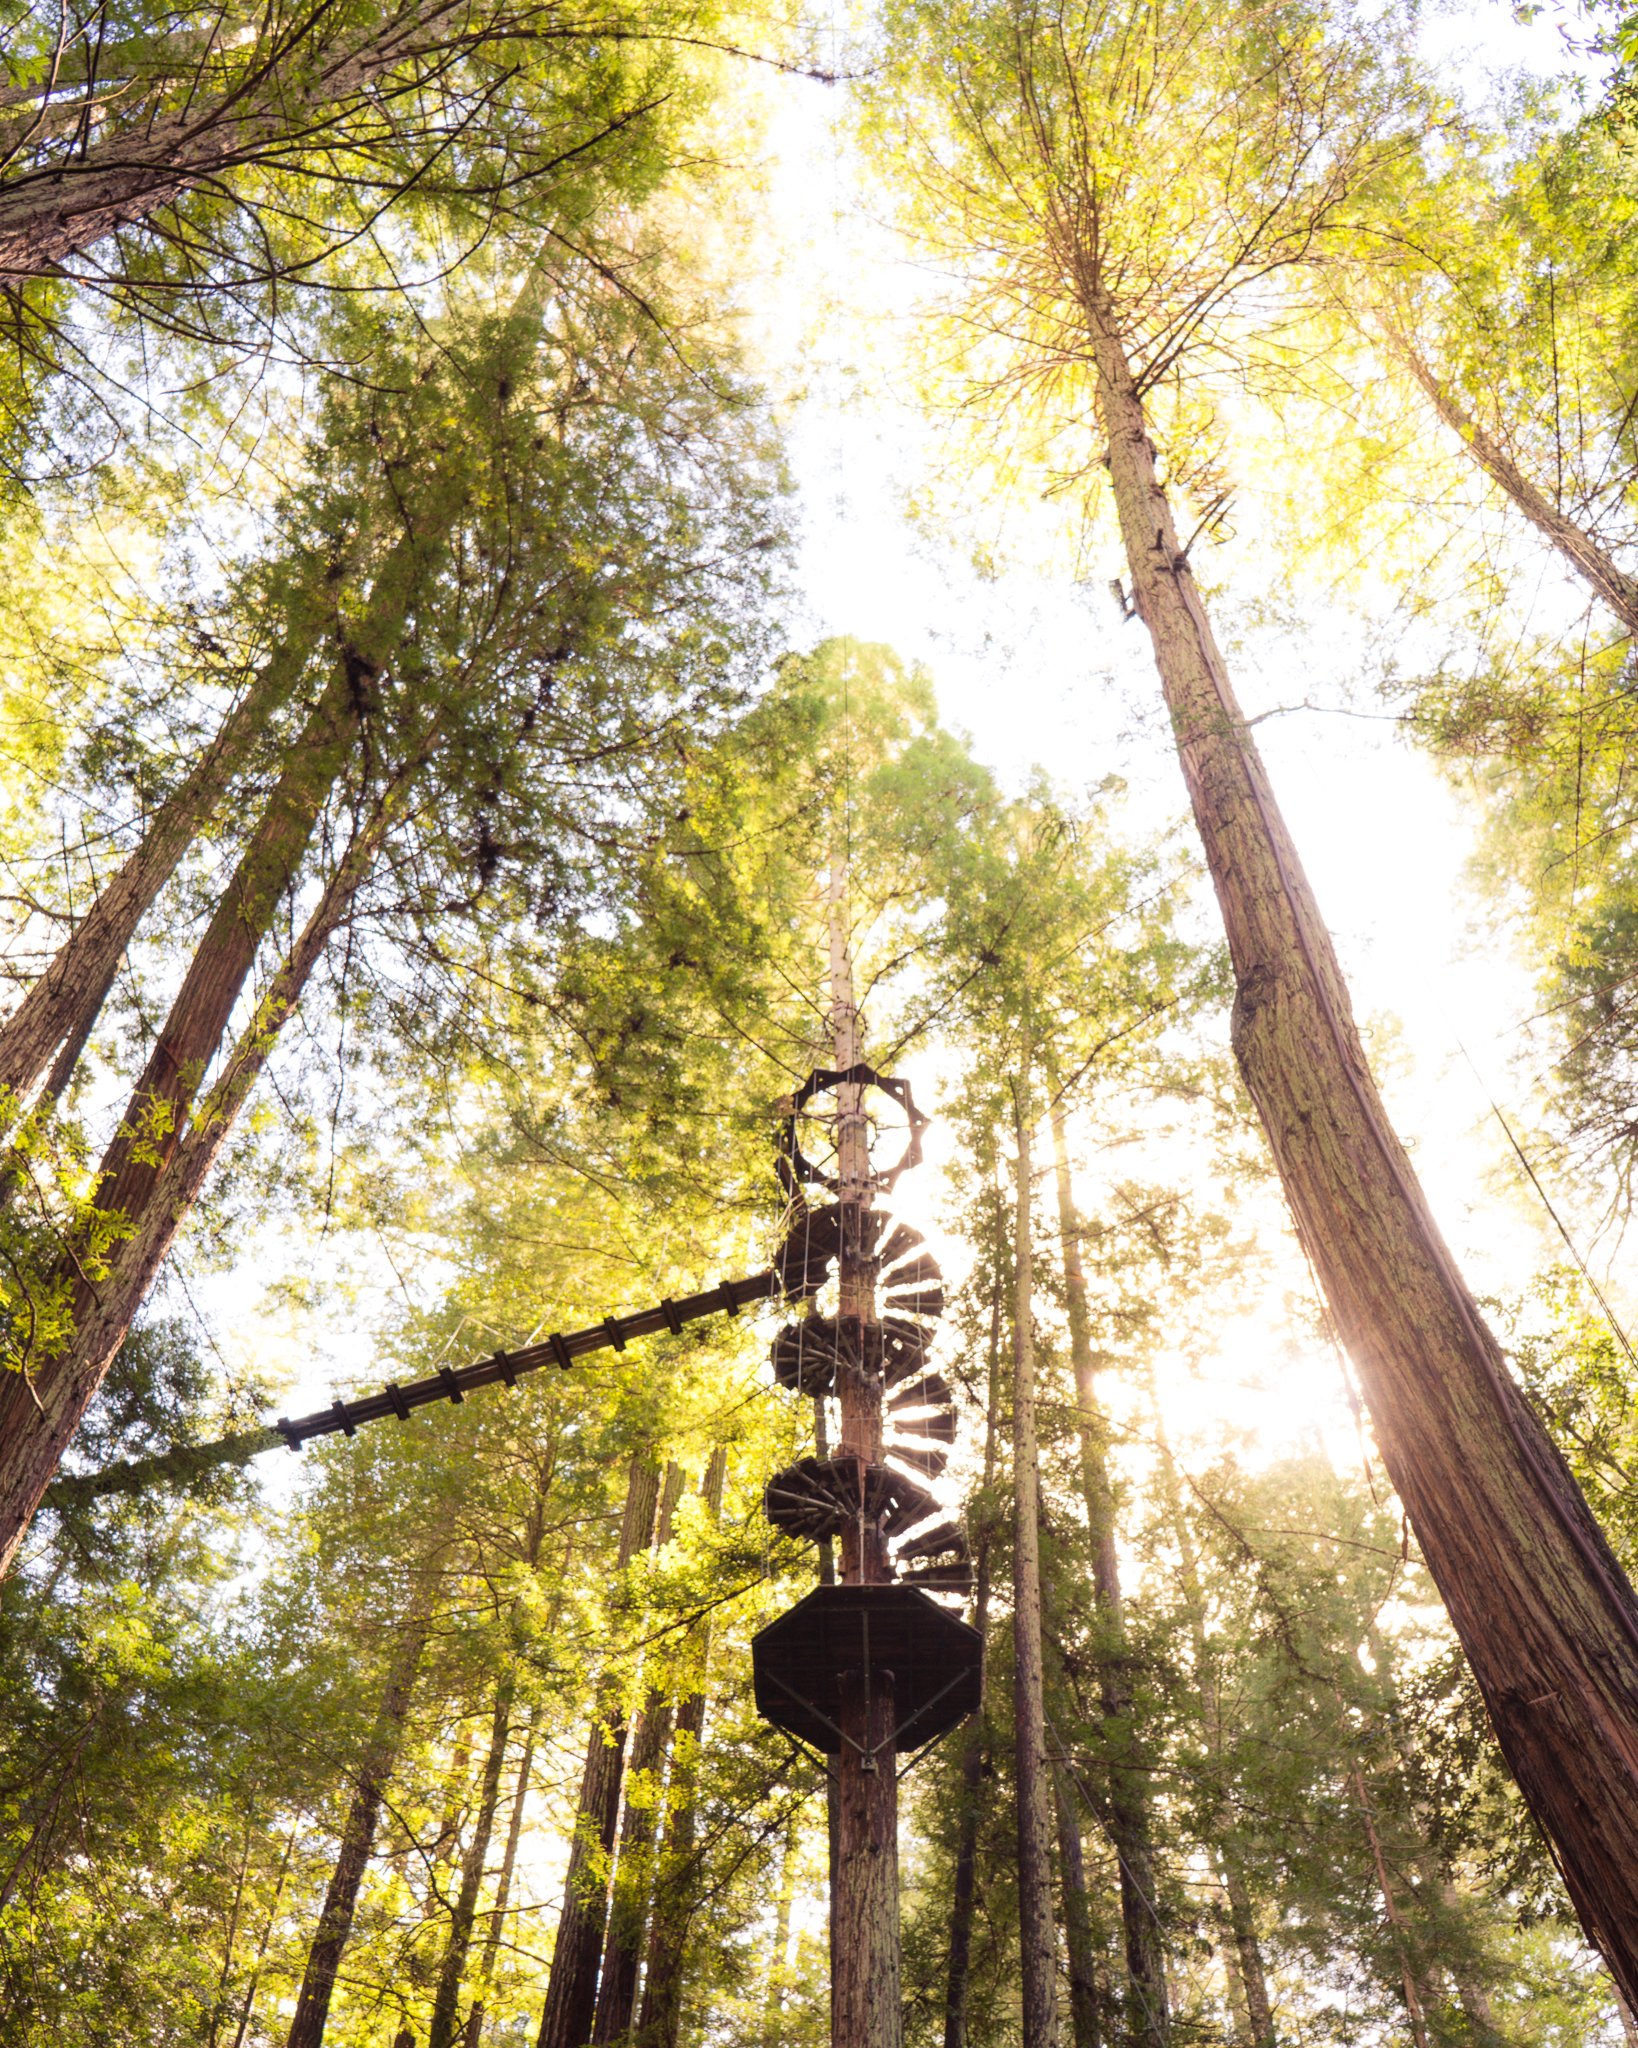 Part of the extremely fun zip line at Sonoma Canopy Tours!